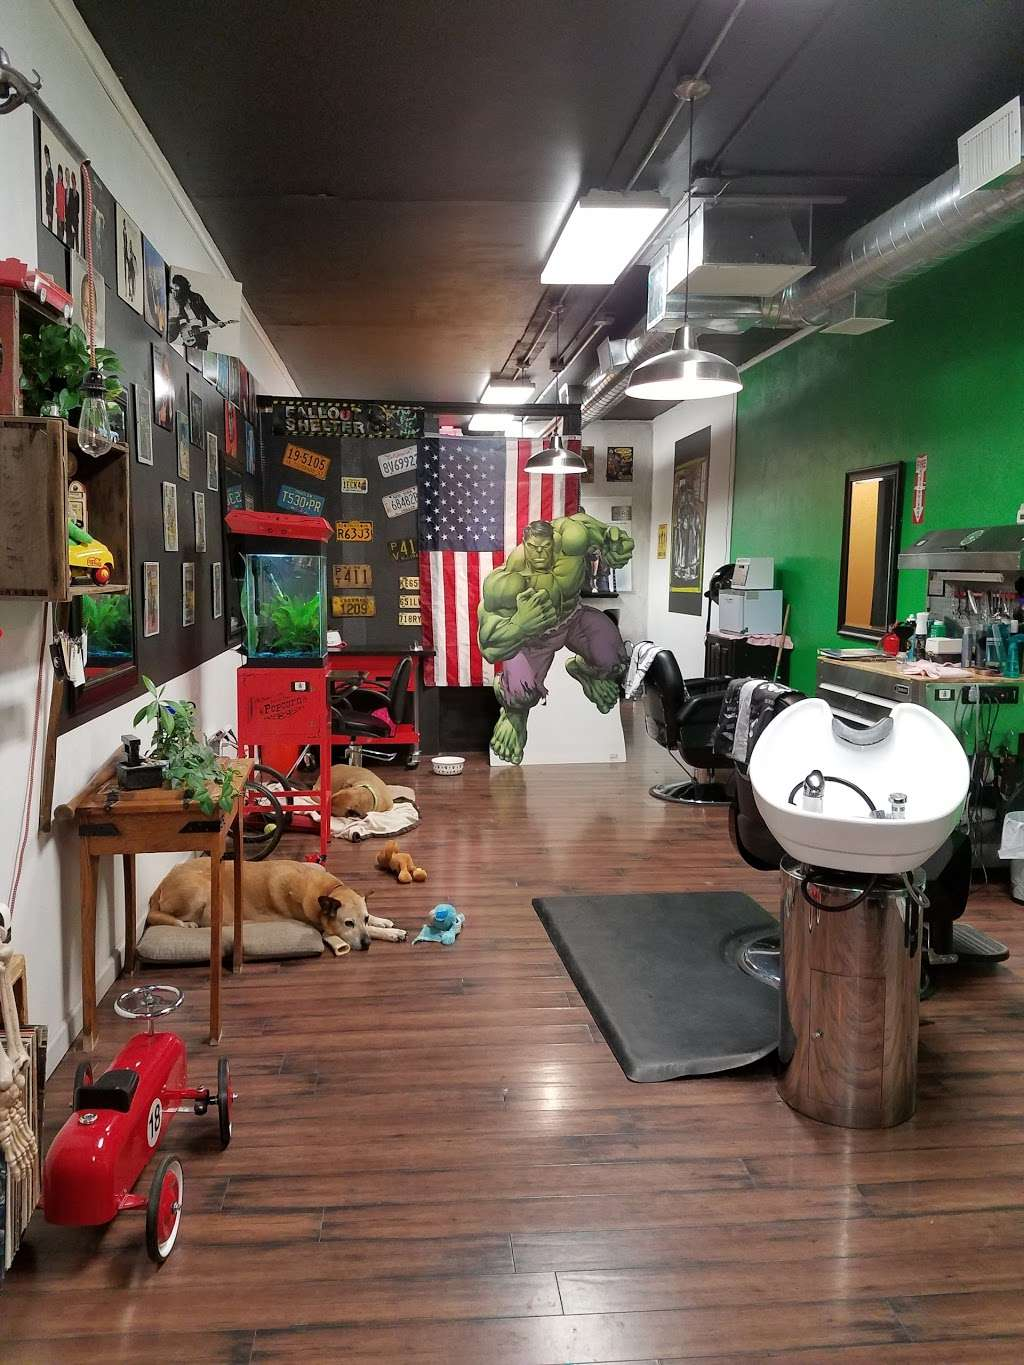 The Garage Hair Studio - hair care  | Photo 1 of 6 | Address: 1033 River Rd, New Milford, NJ 07646, USA | Phone: (201) 530-7440